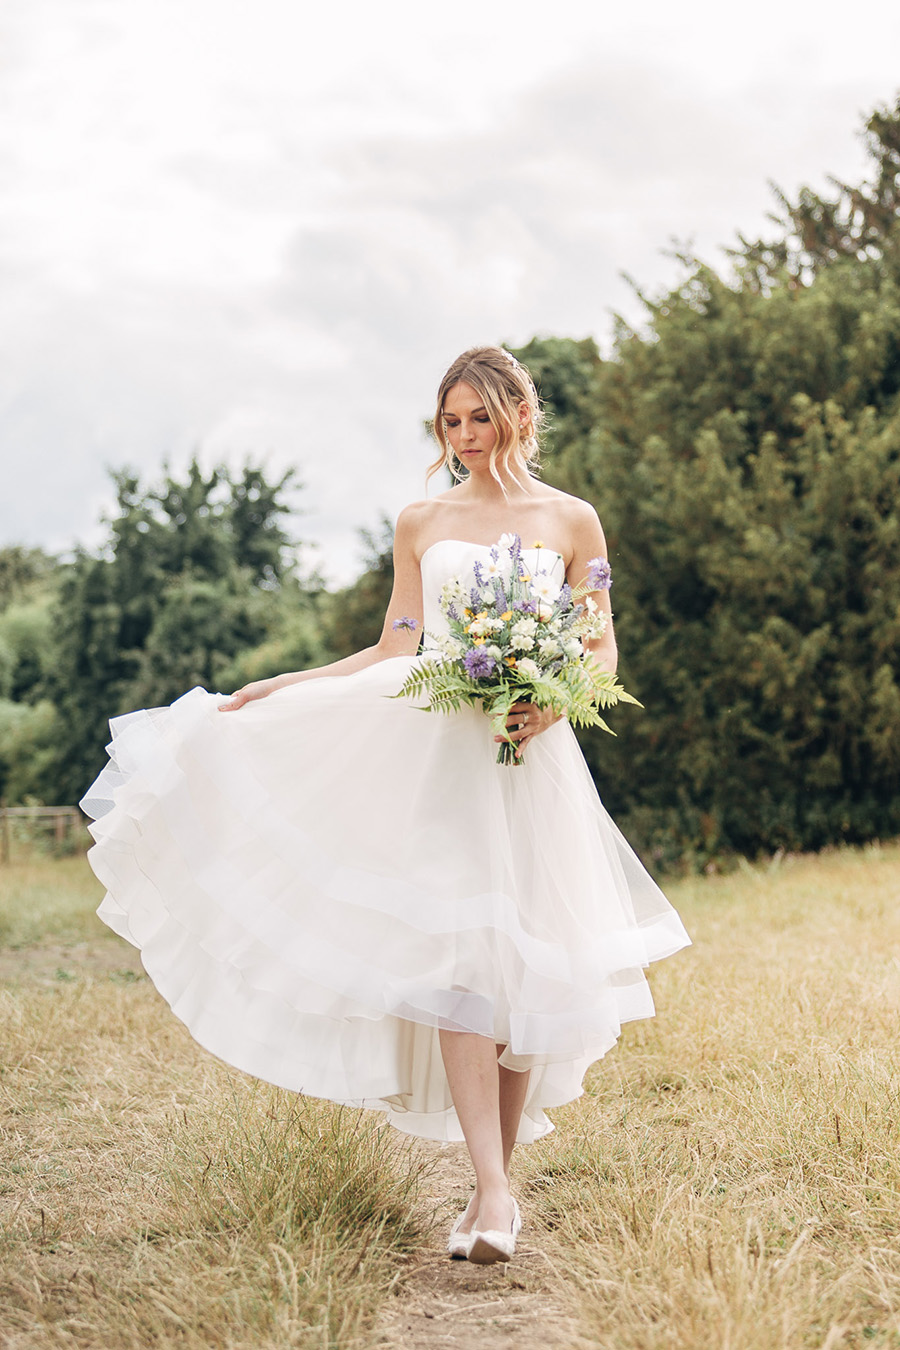 English heritage style inspiration for 2019 weddings, with Photography by Michaelangelo on English-Wedding.com (26)